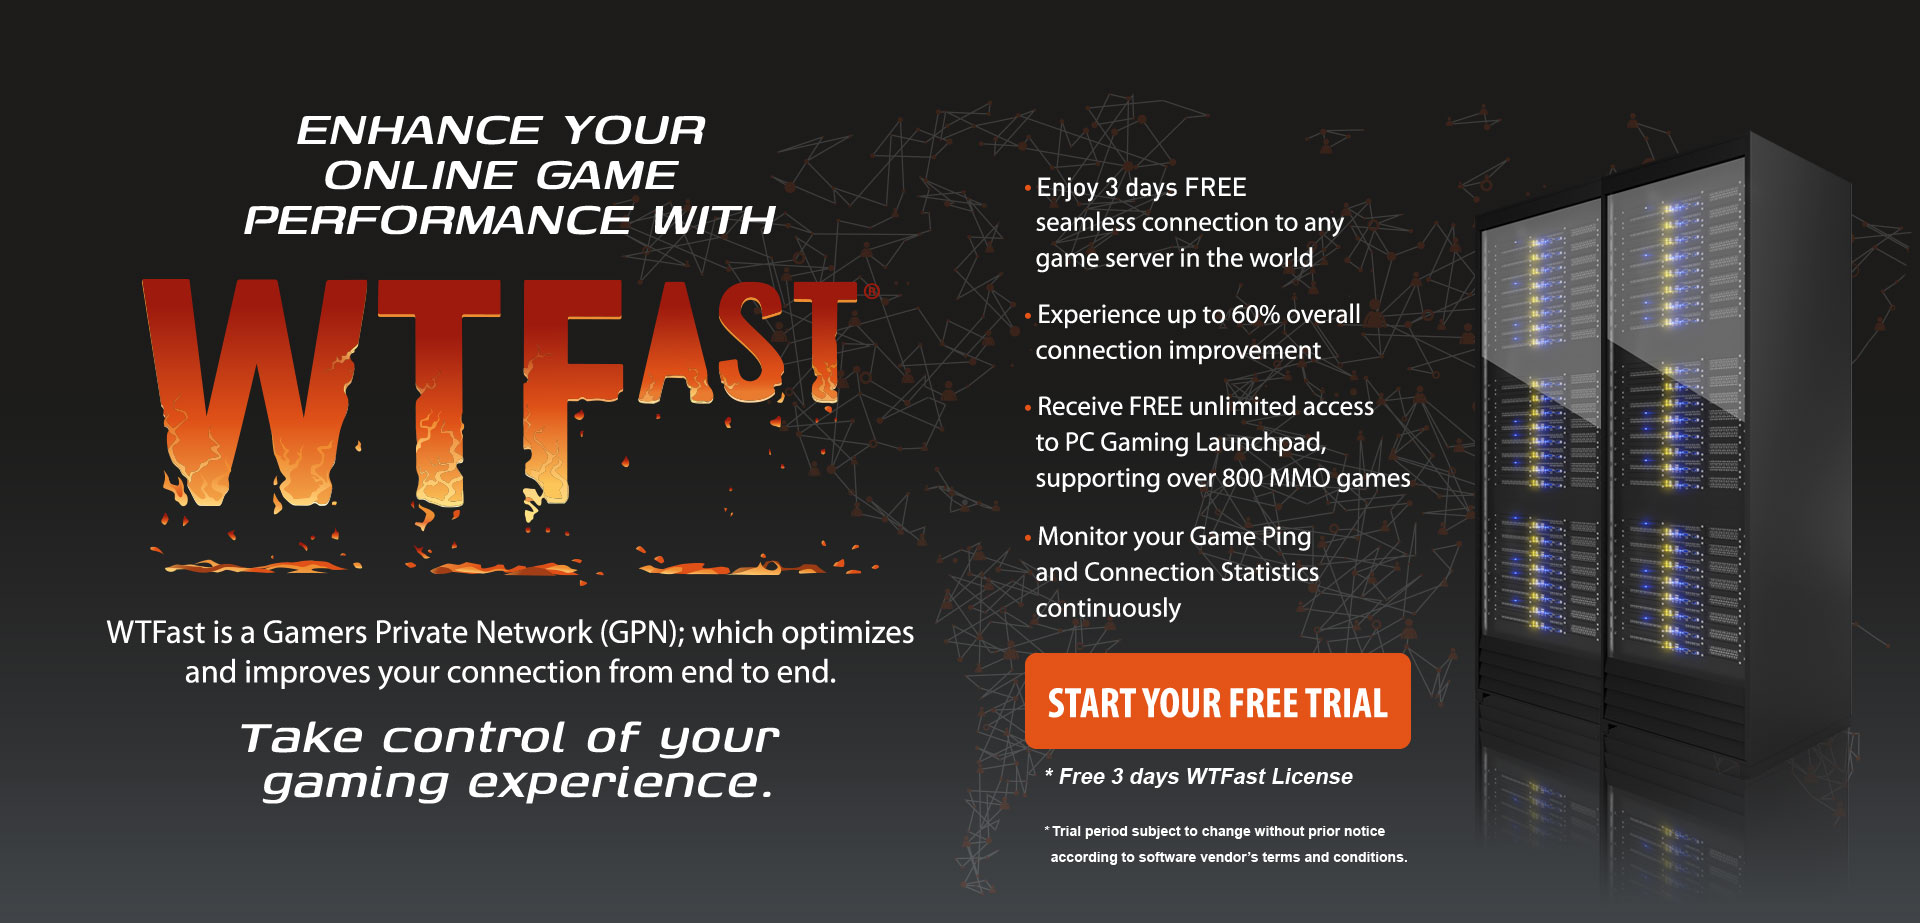 Wtfast crack unlimited trial days-1